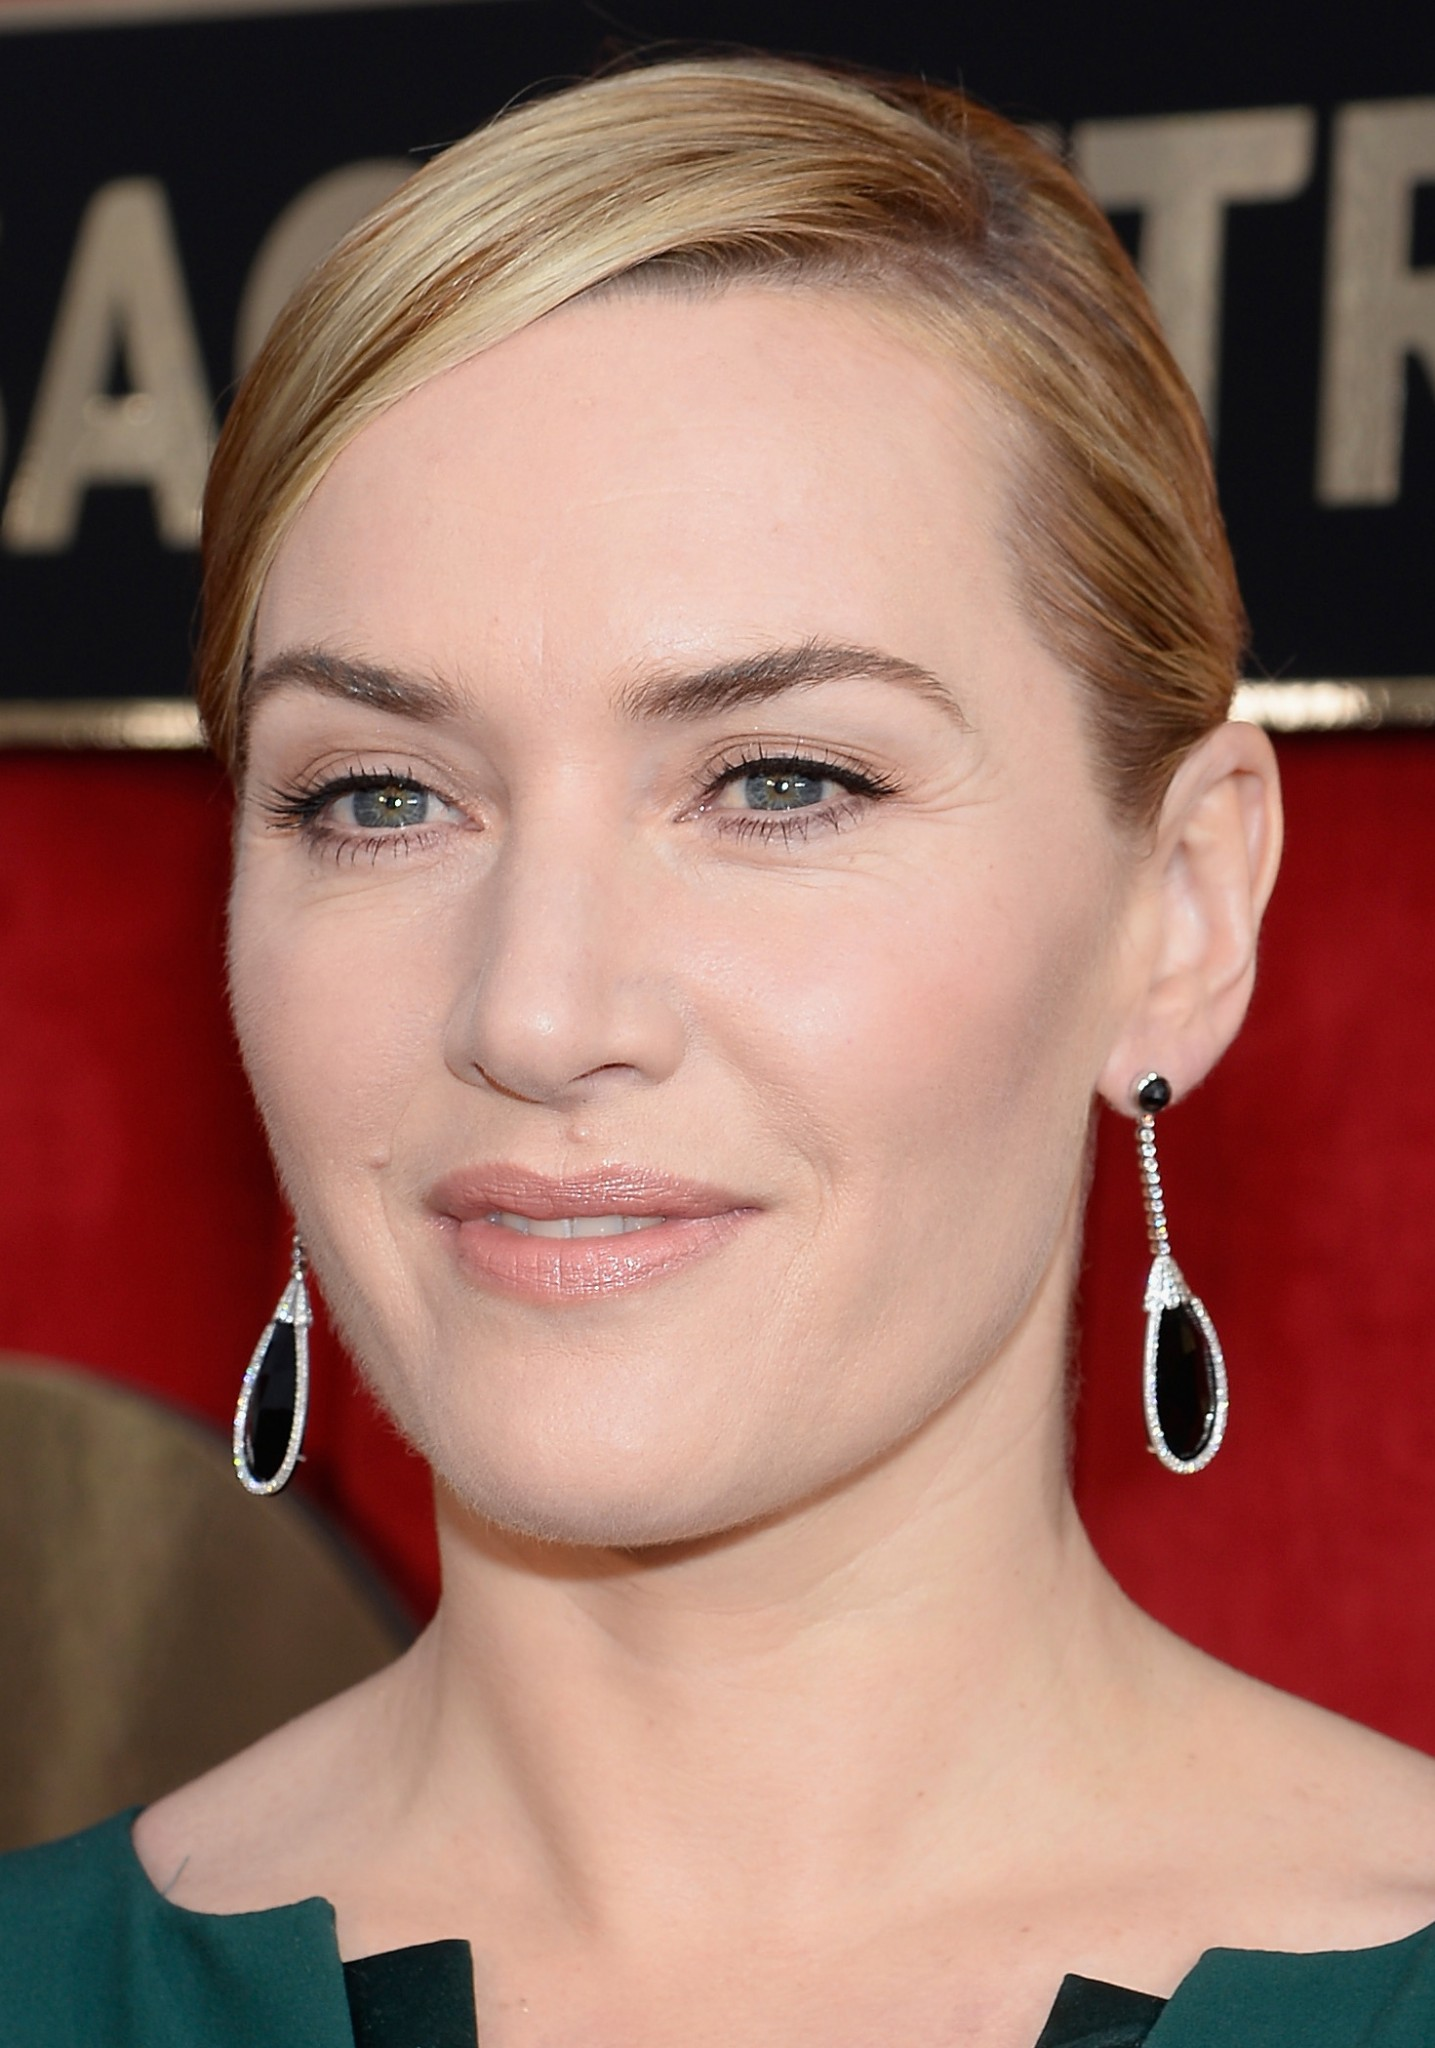 Chignon hairstyle Kate Winslet SAG Awards